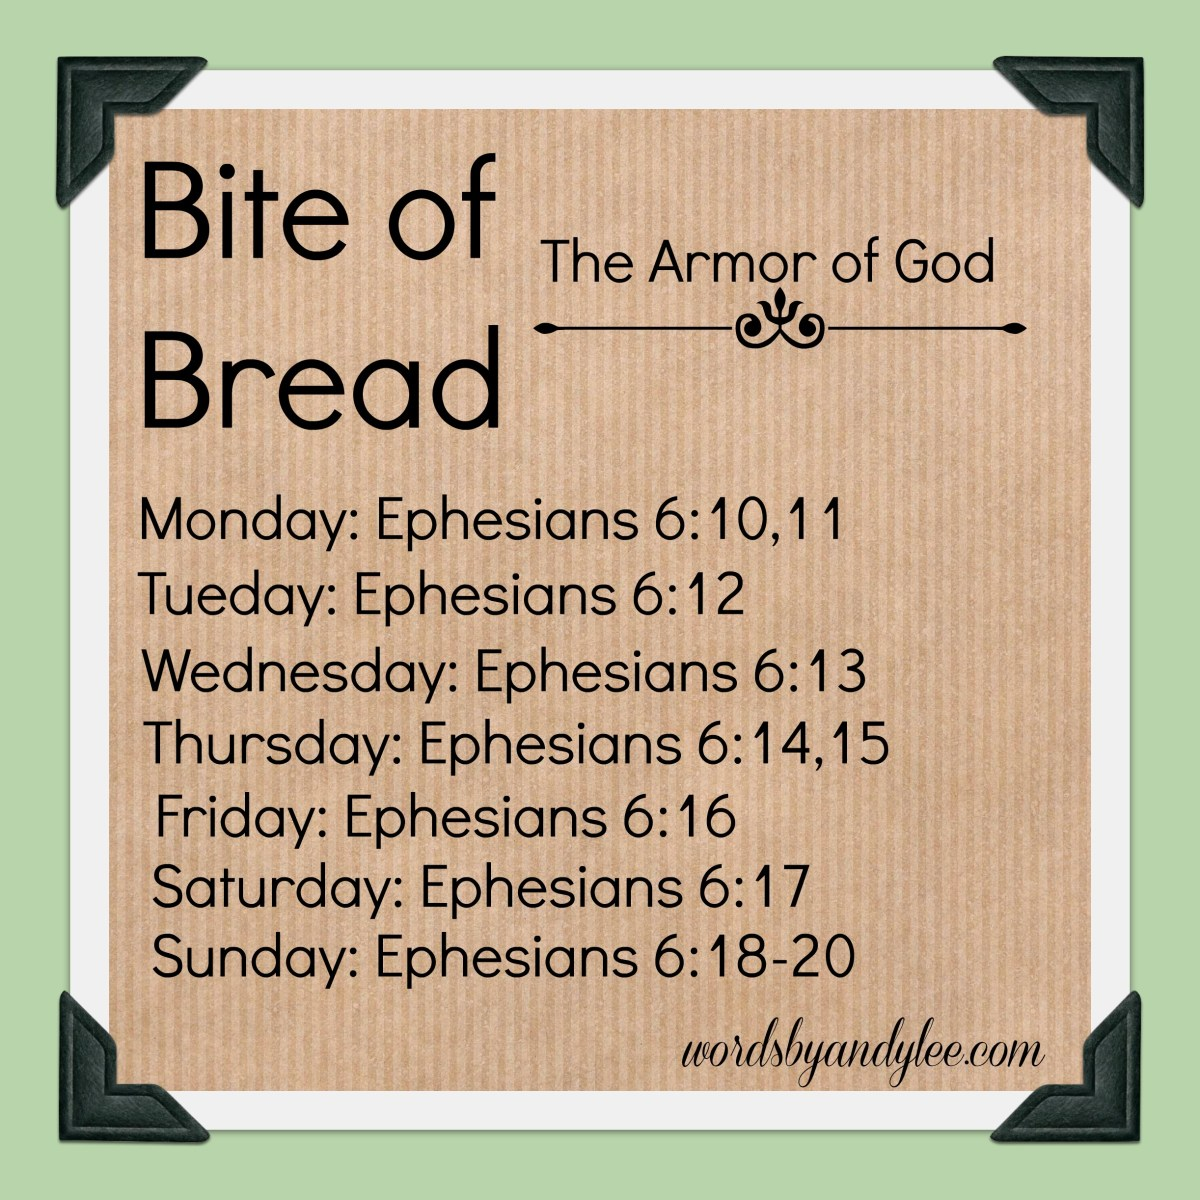 Bite of Bread Reading Plan: The Armor of God